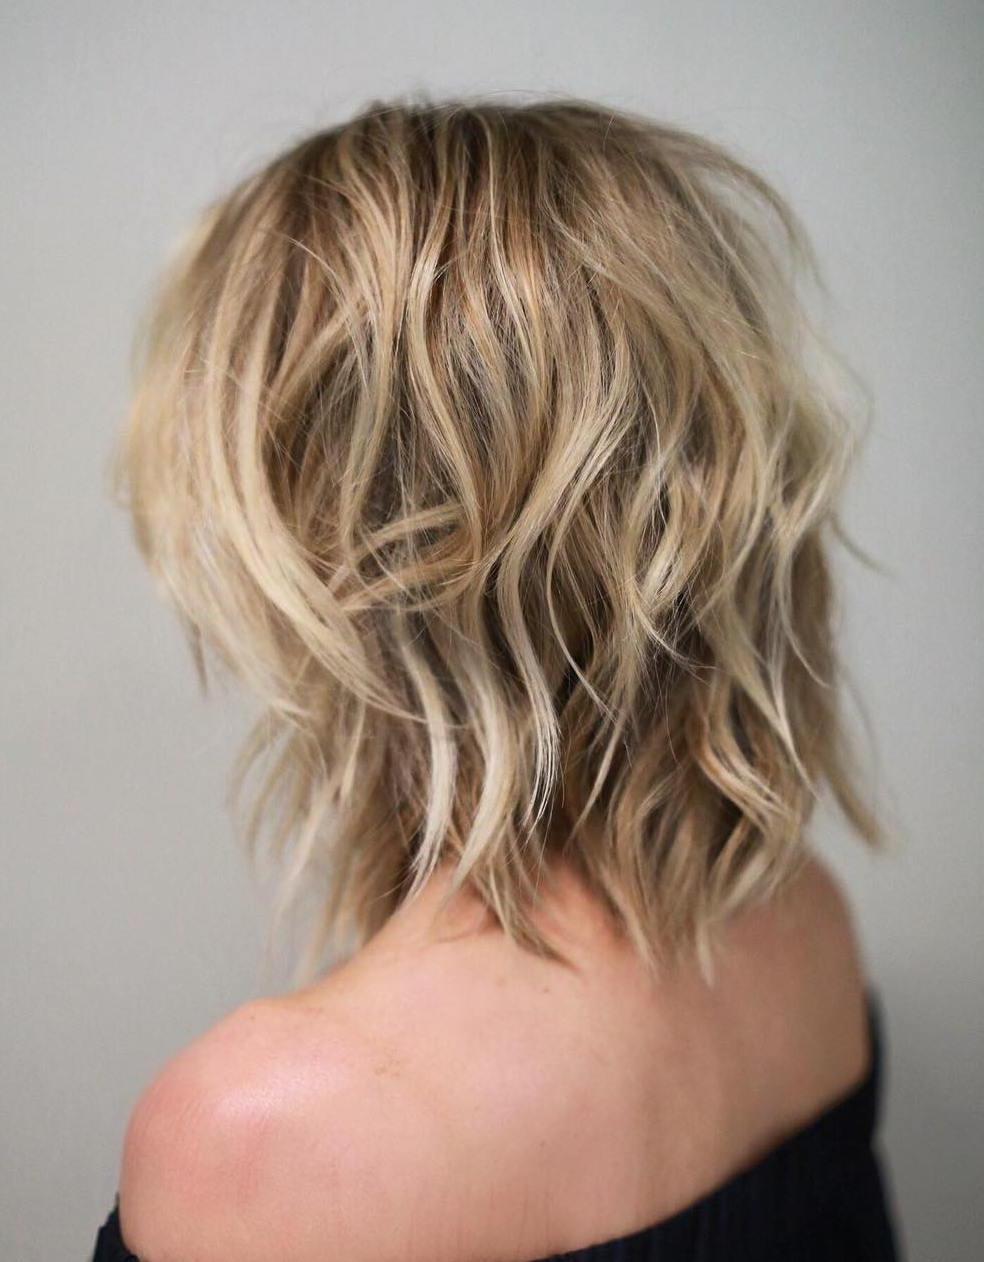 Shag Haircuts And Hairstyles In 2018 — Therighthairstyles With Wavy Sassy Bob Hairstyles (View 23 of 25)